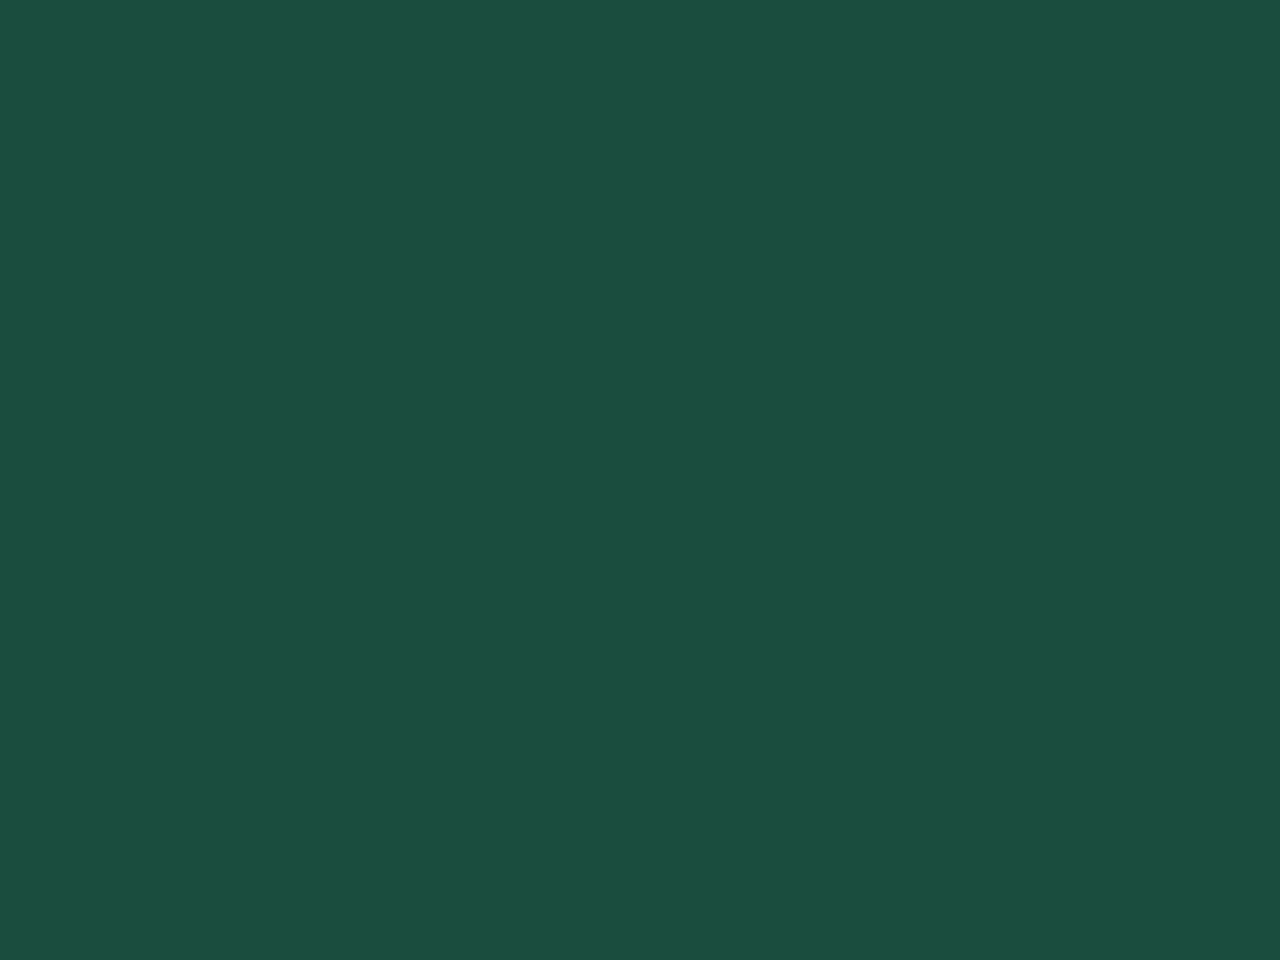 1280x960 English Green Solid Color Background